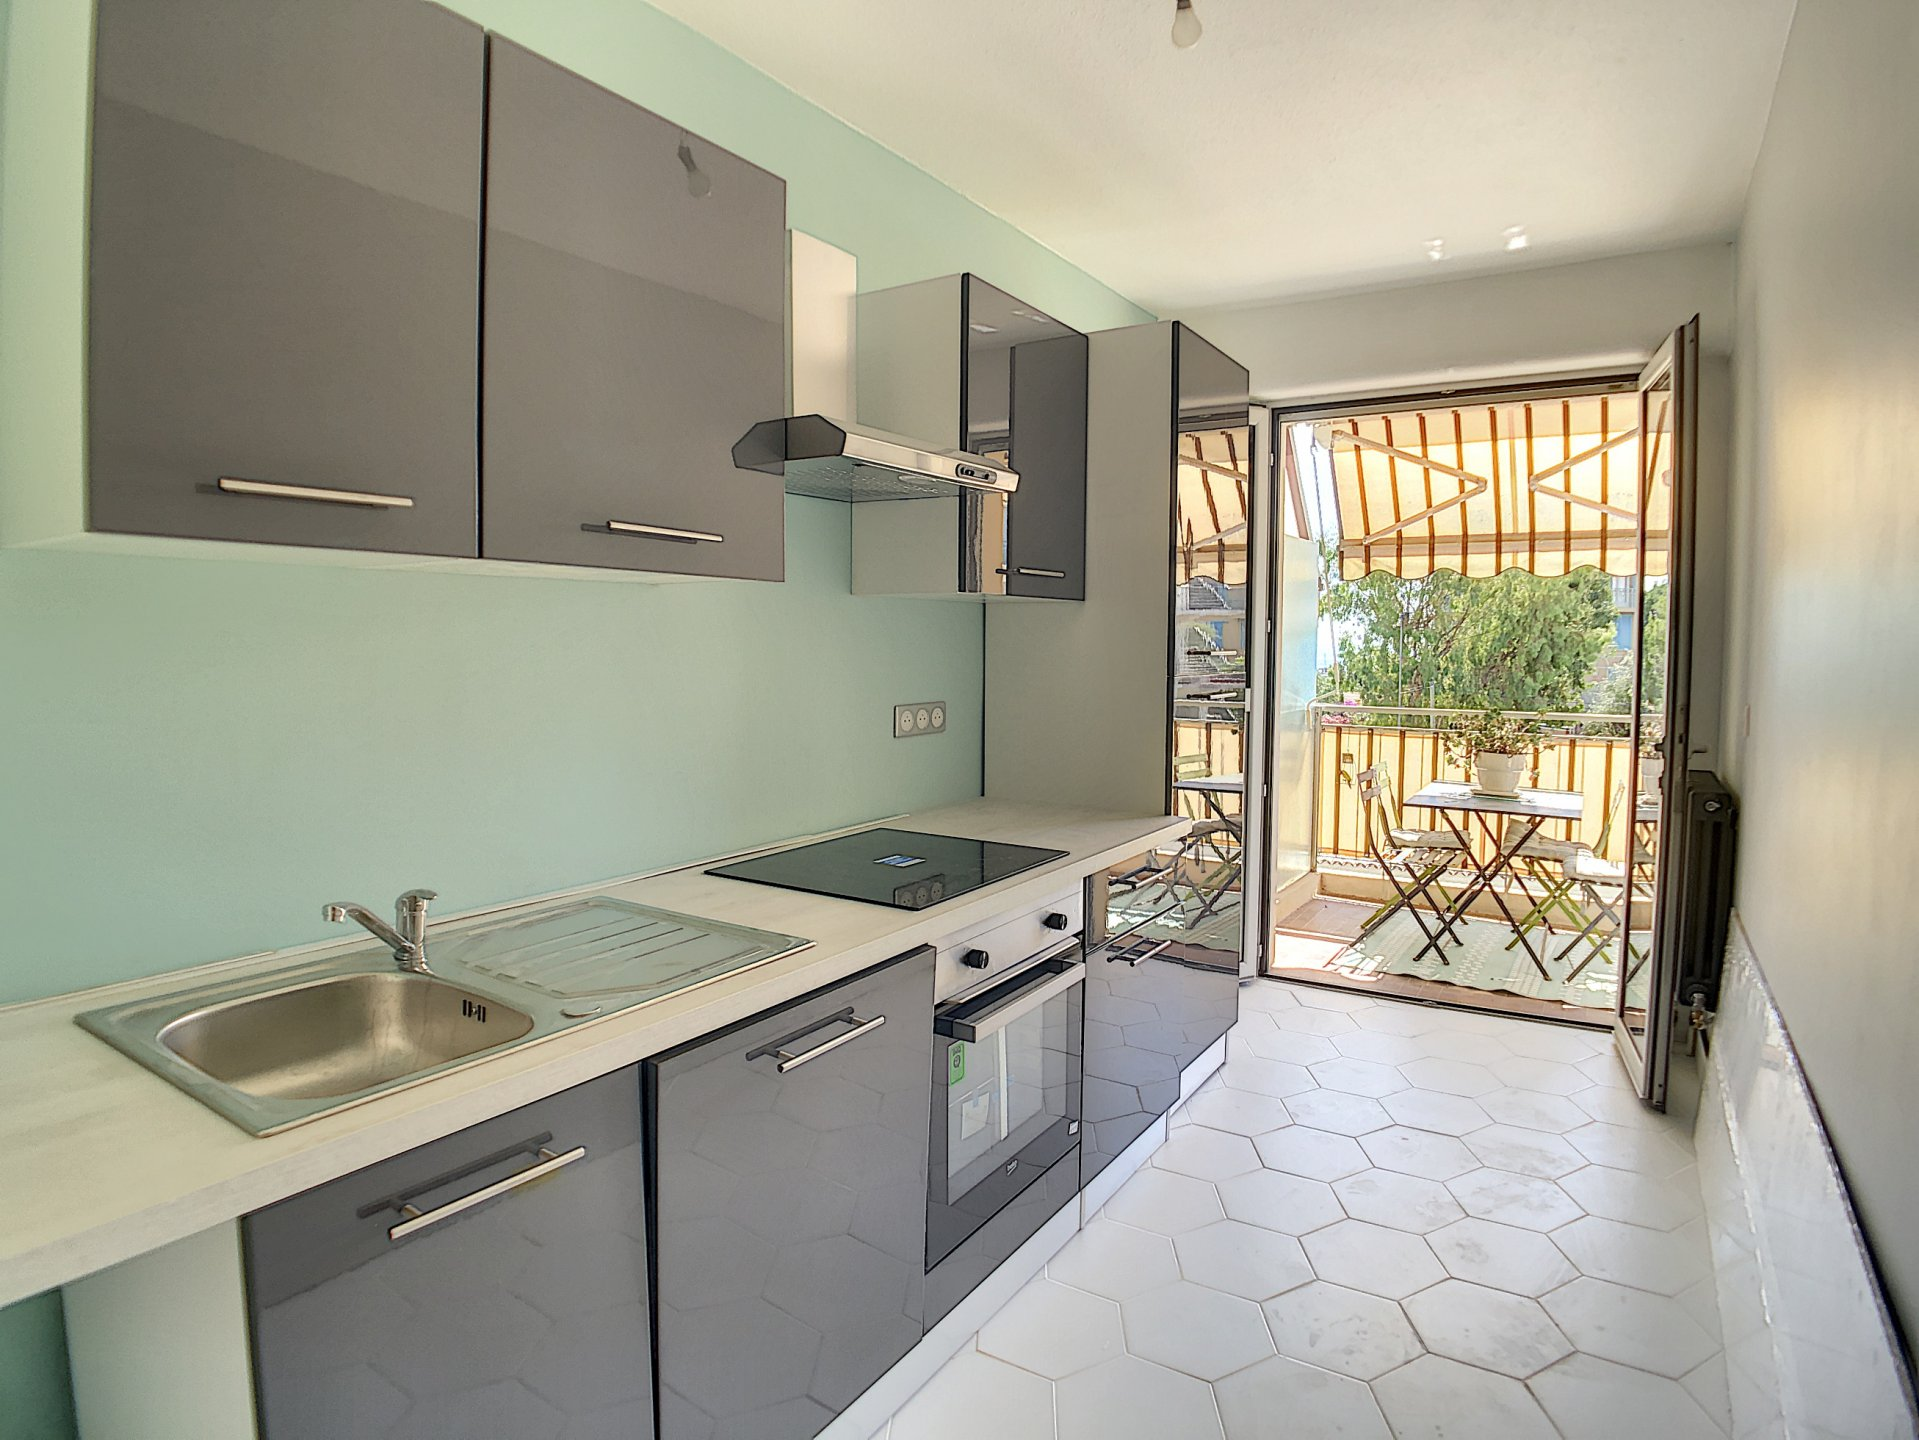 2 bedrooms apartment in Antibes